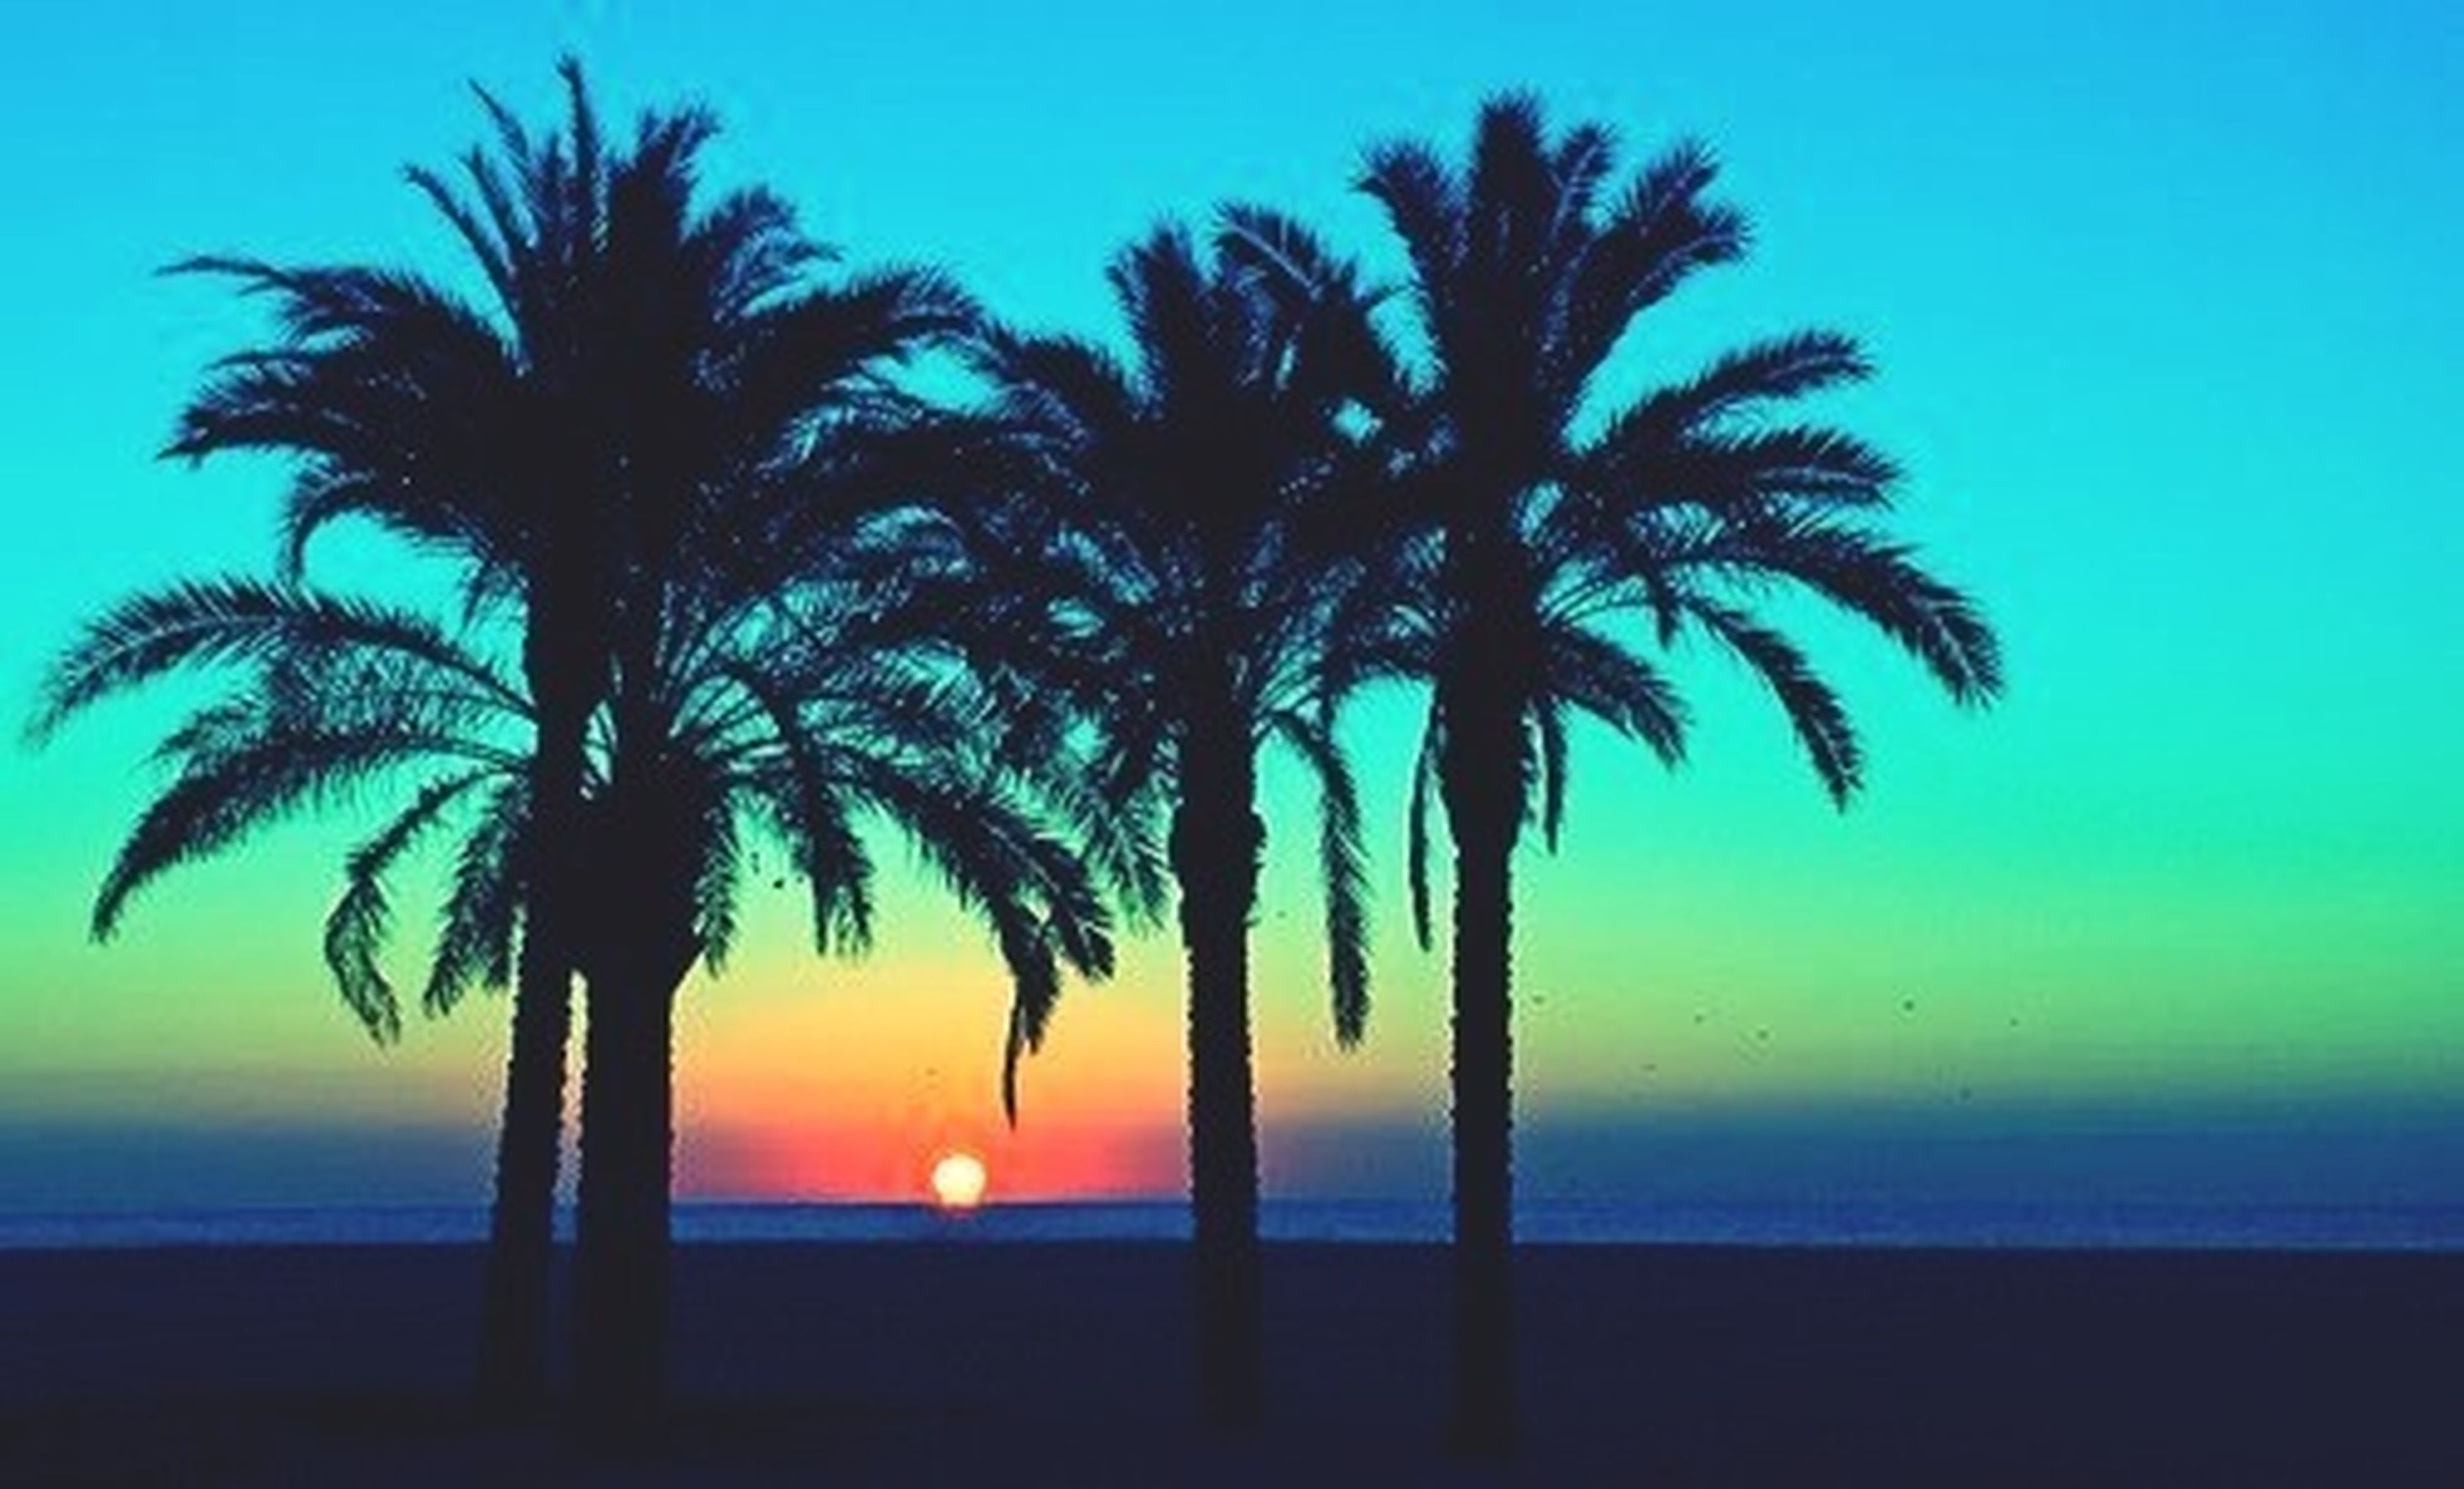 palm tree, sea, horizon over water, sunset, tranquility, tranquil scene, scenics, beauty in nature, silhouette, beach, water, tree, nature, sky, tree trunk, idyllic, shore, blue, clear sky, growth